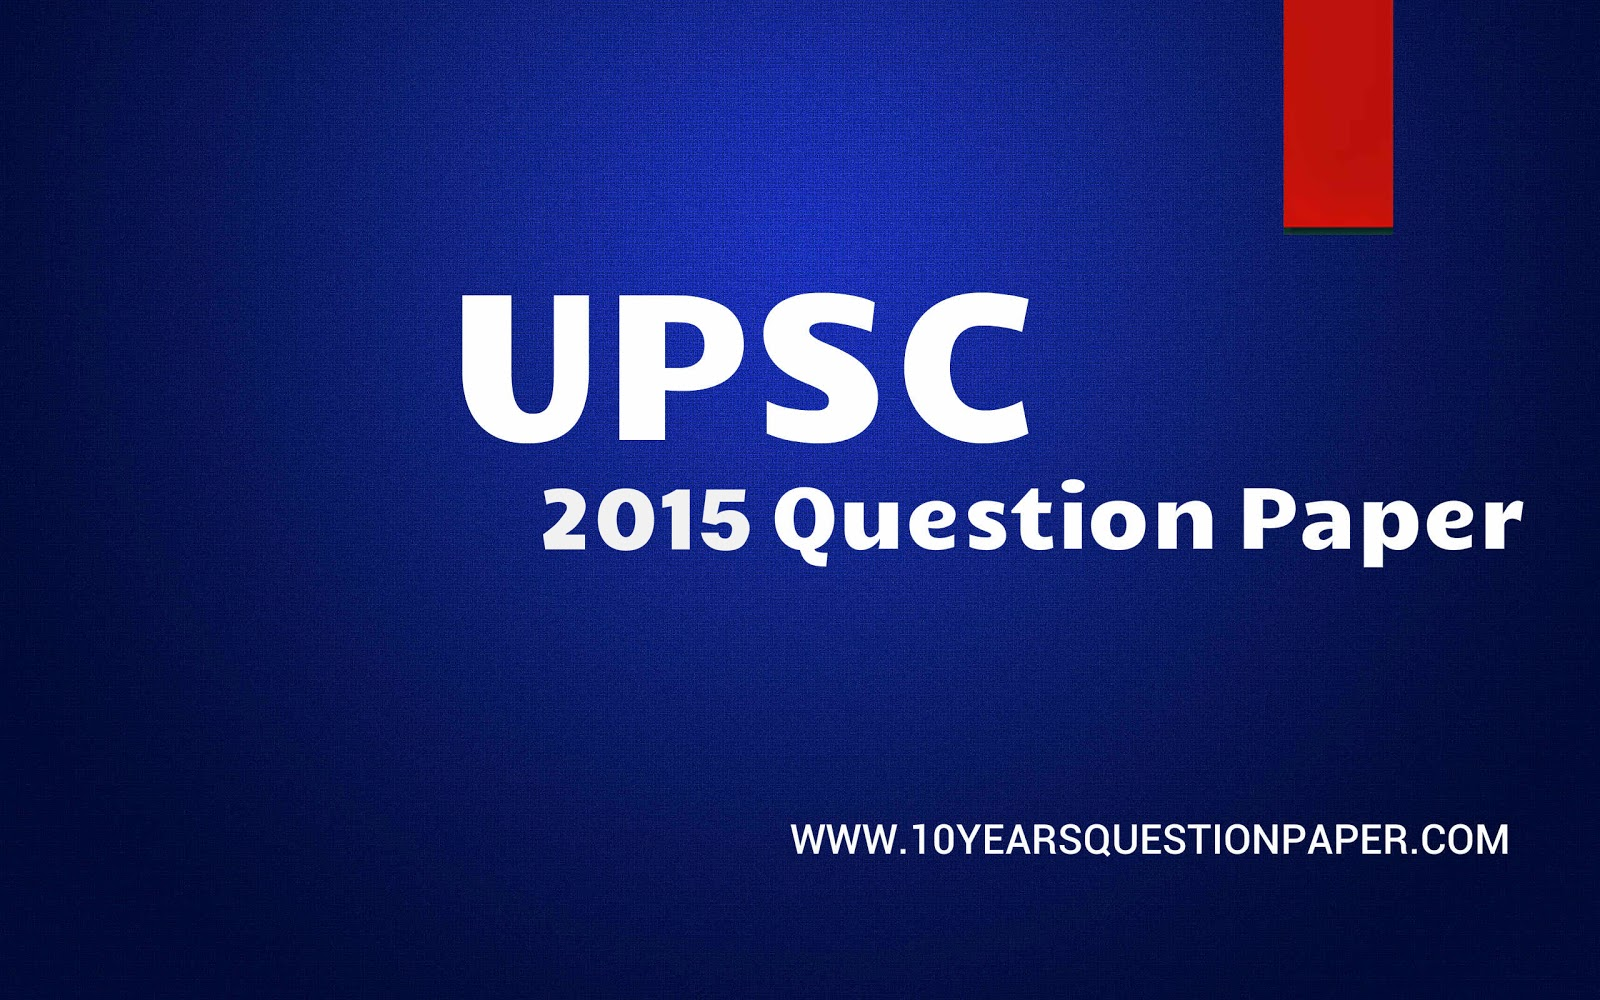 upsc question paper, question paper of upsc